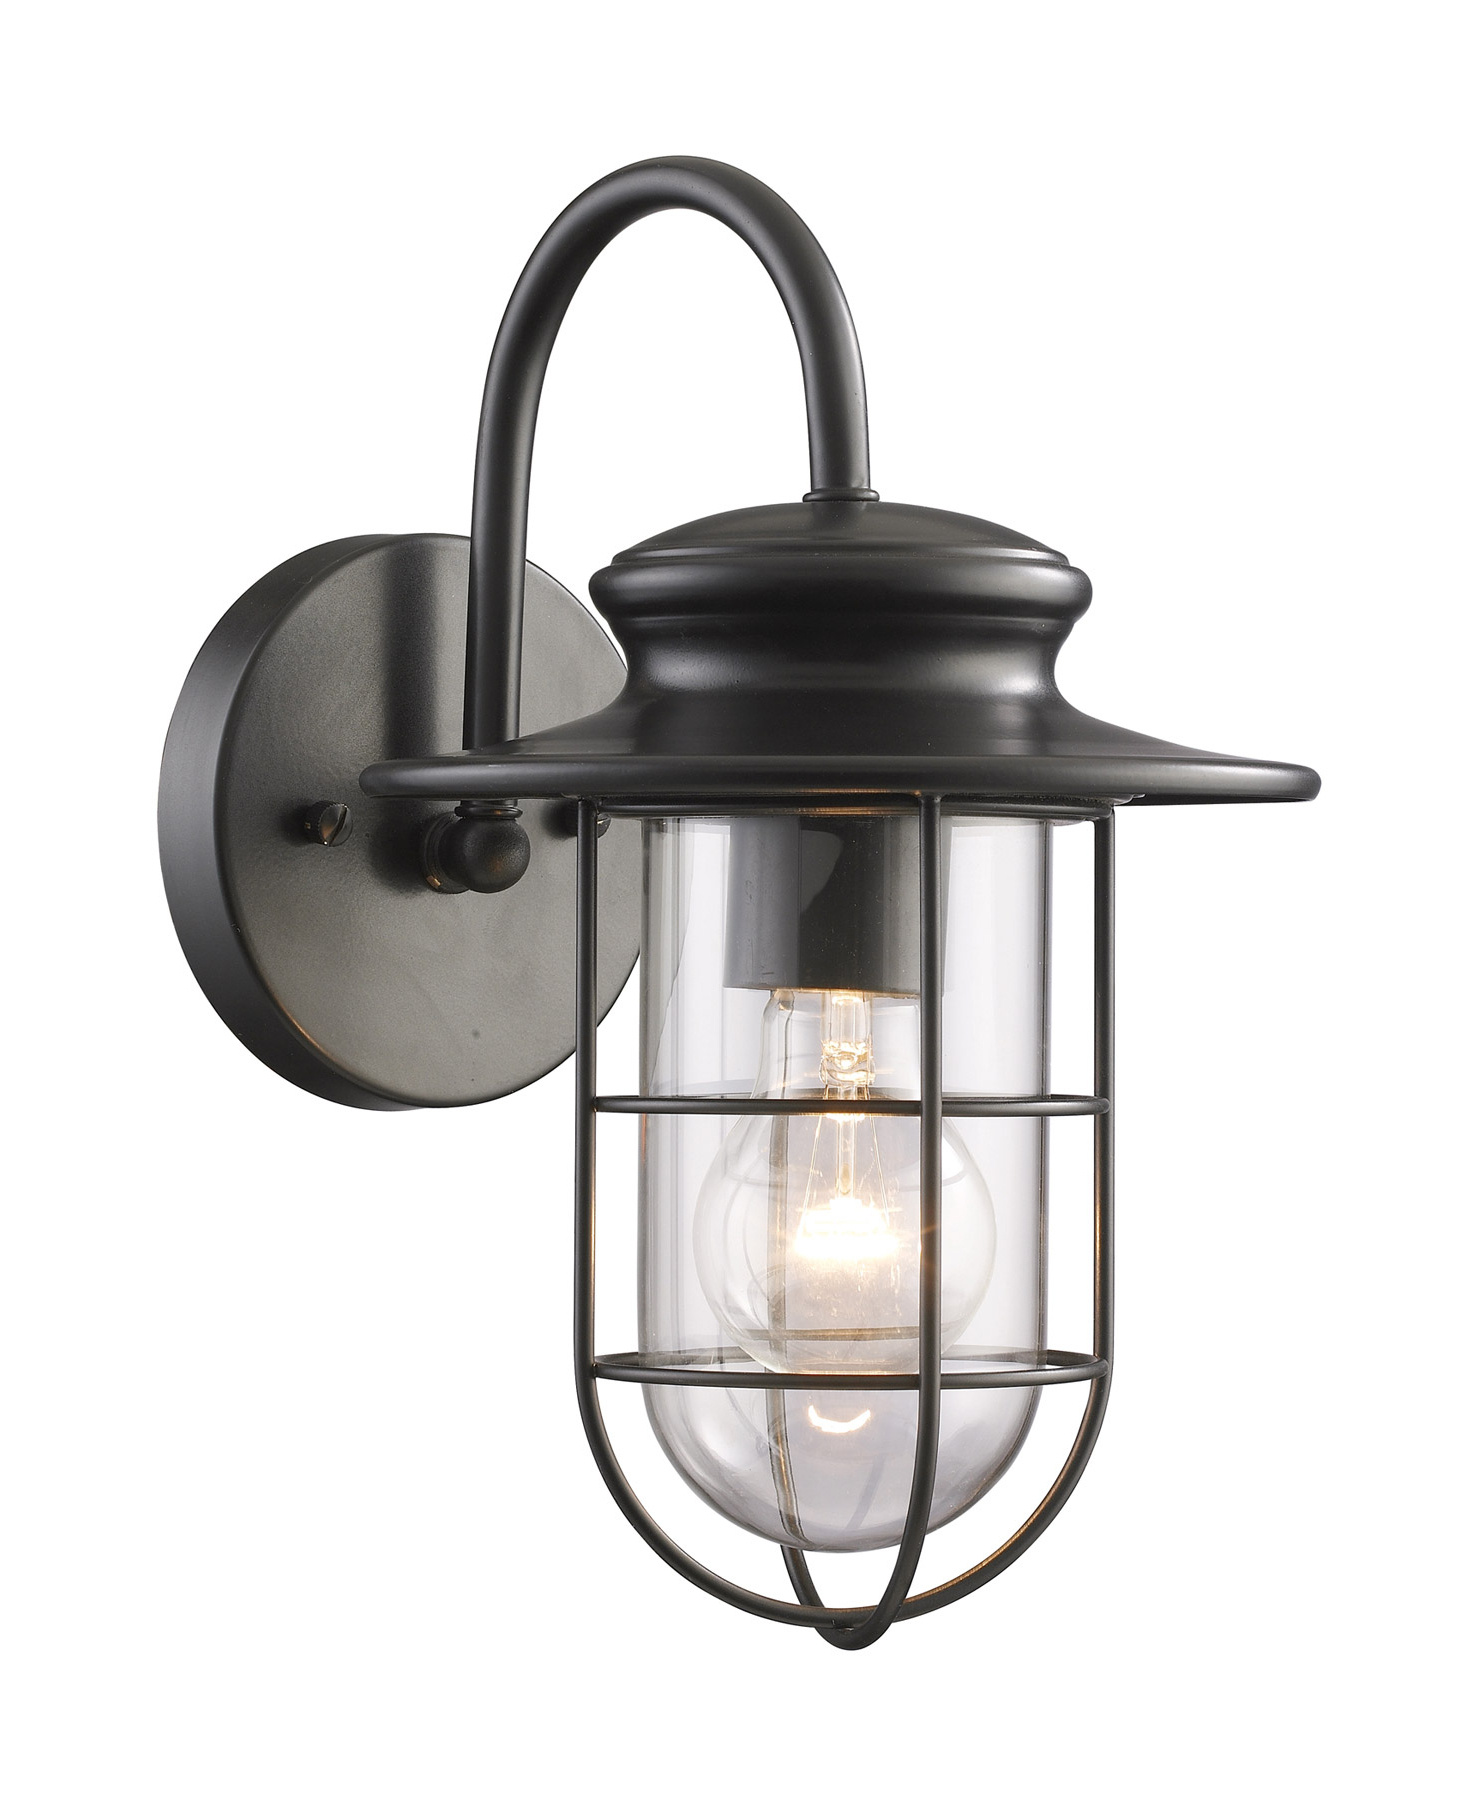 Elk Lighting 42284/1 Portside Outdoor Wall Mount Lantern In Fashionable Powell Outdoor Wall Lanterns (View 7 of 20)